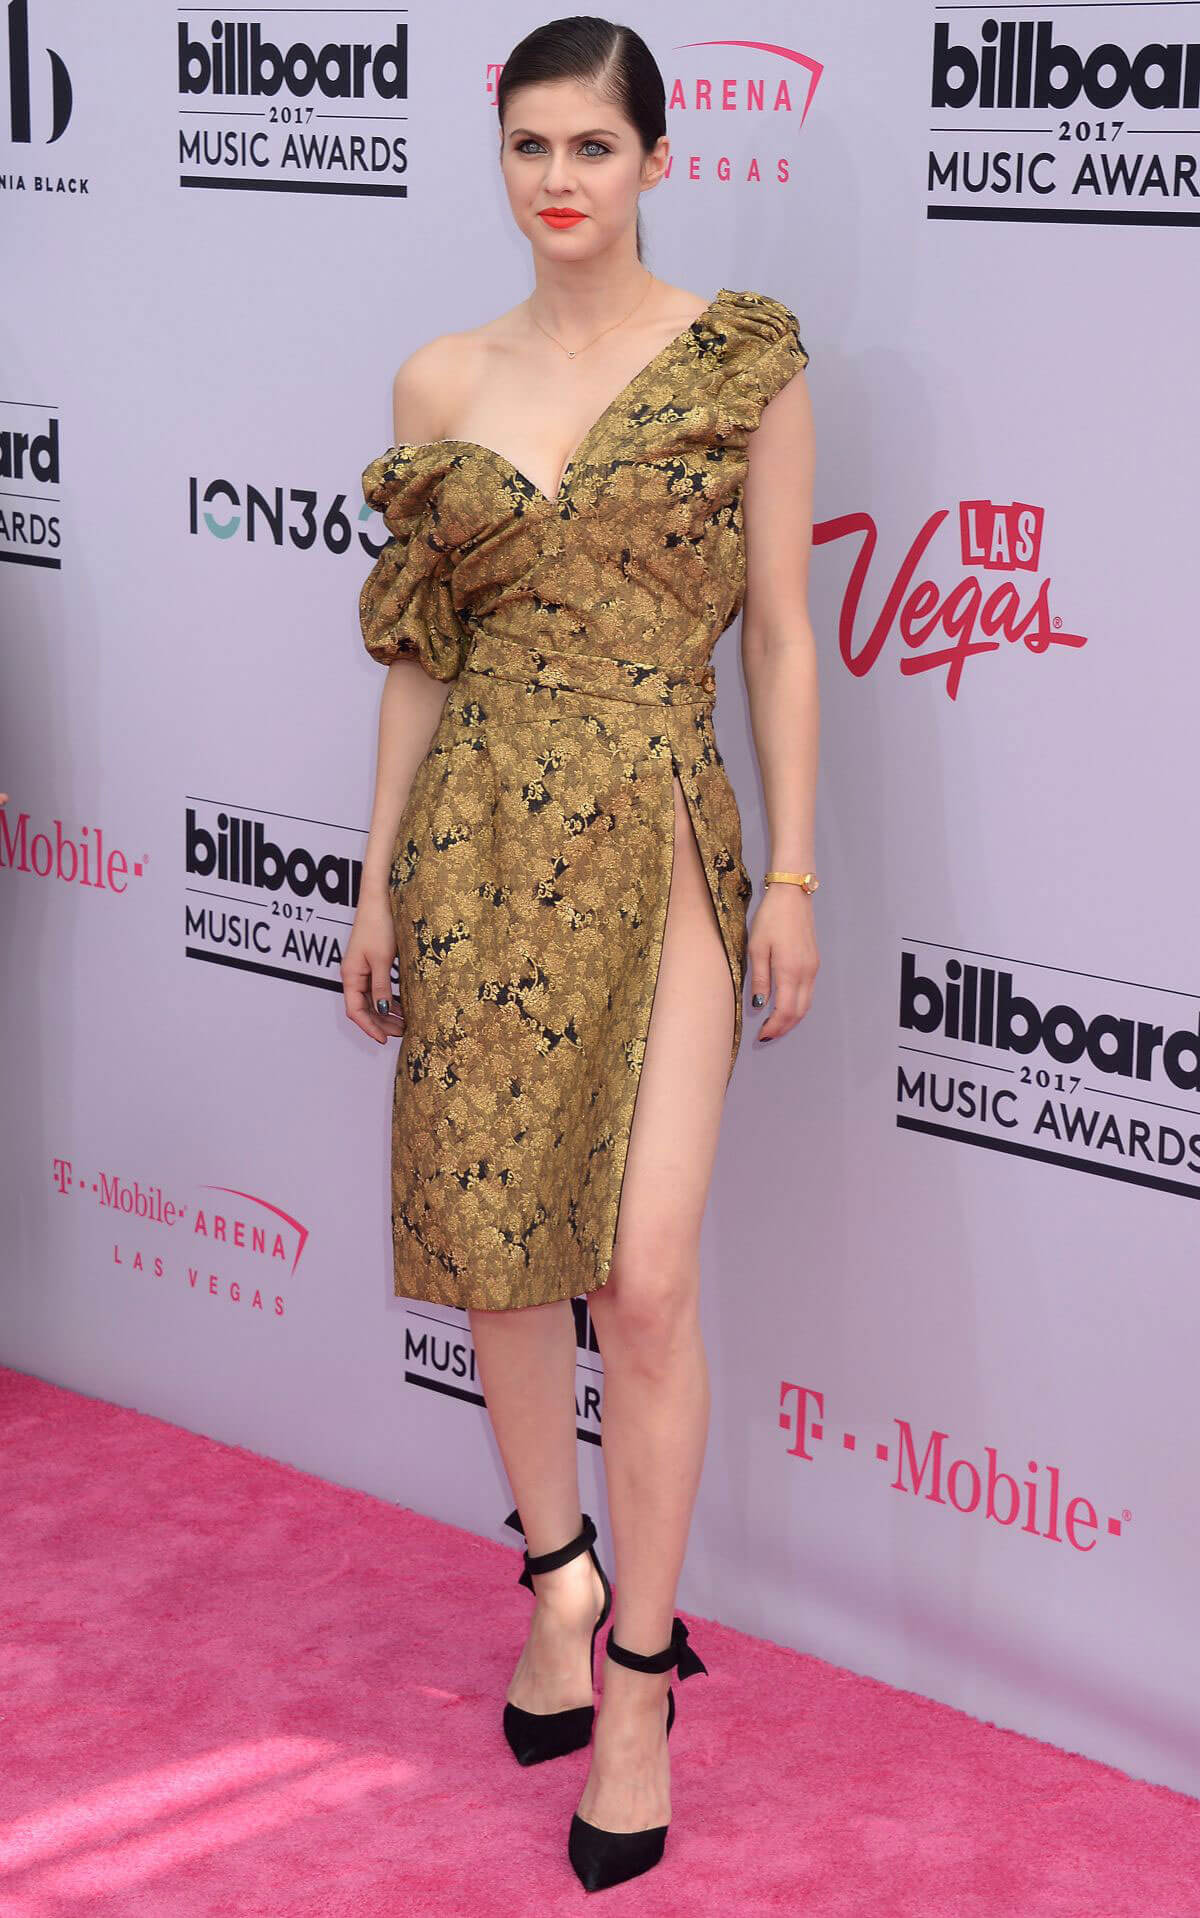 Alexandra Daddario at Billboard Music Awards 2017 in Las Vegas